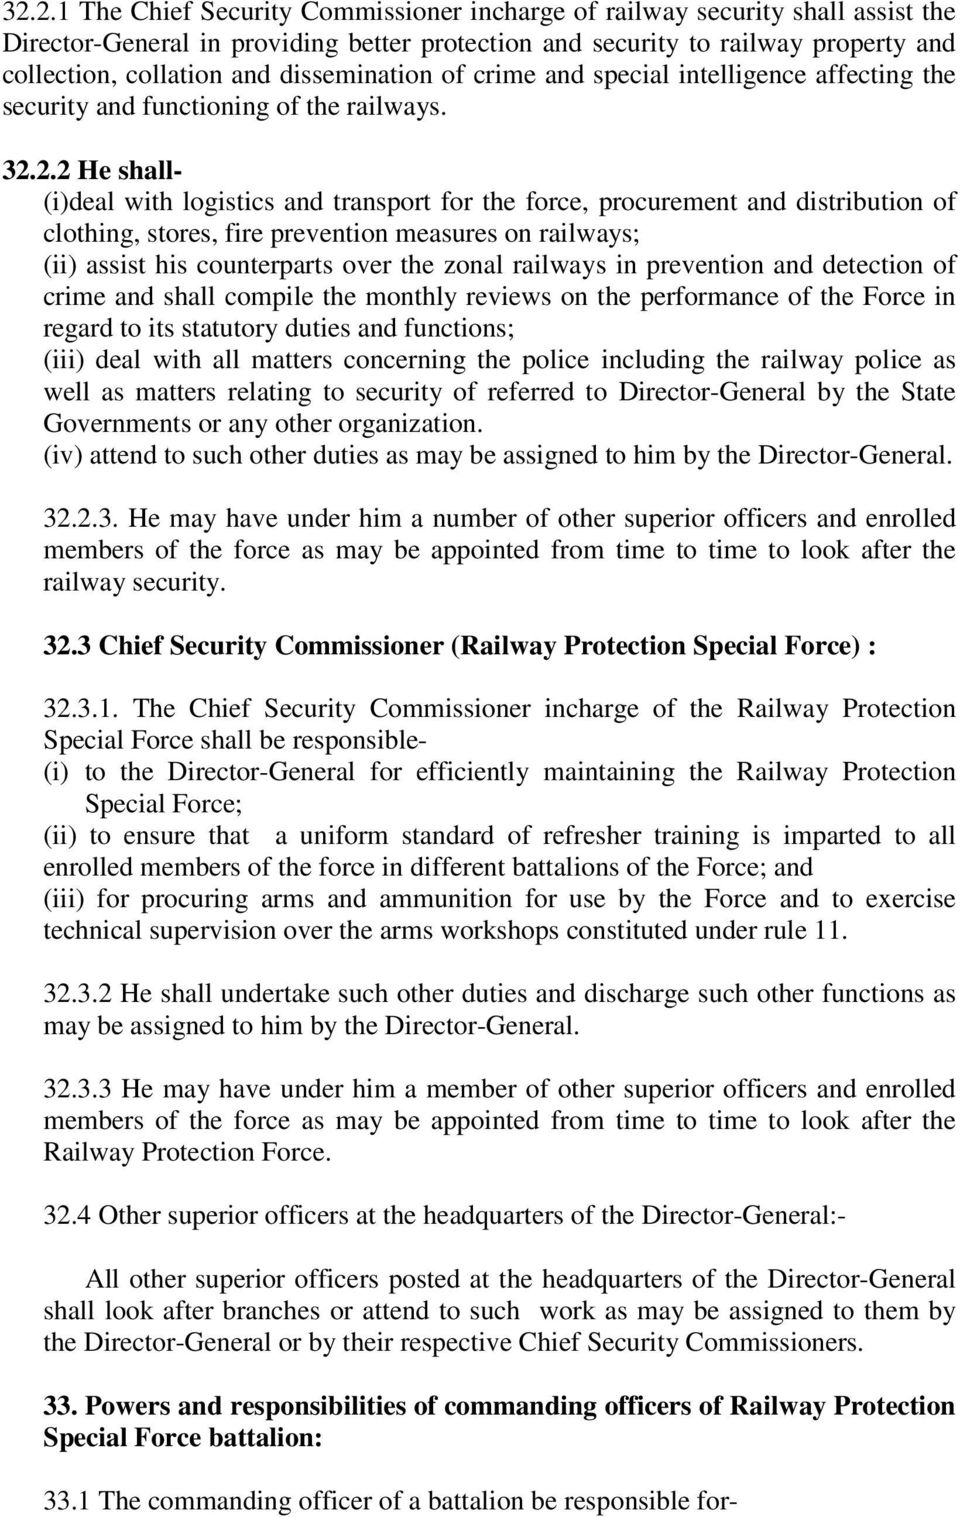 2.2 He shall- (i)deal with logistics and transport for the force, procurement and distribution of clothing, stores, fire prevention measures on railways; (ii) assist his counterparts over the zonal